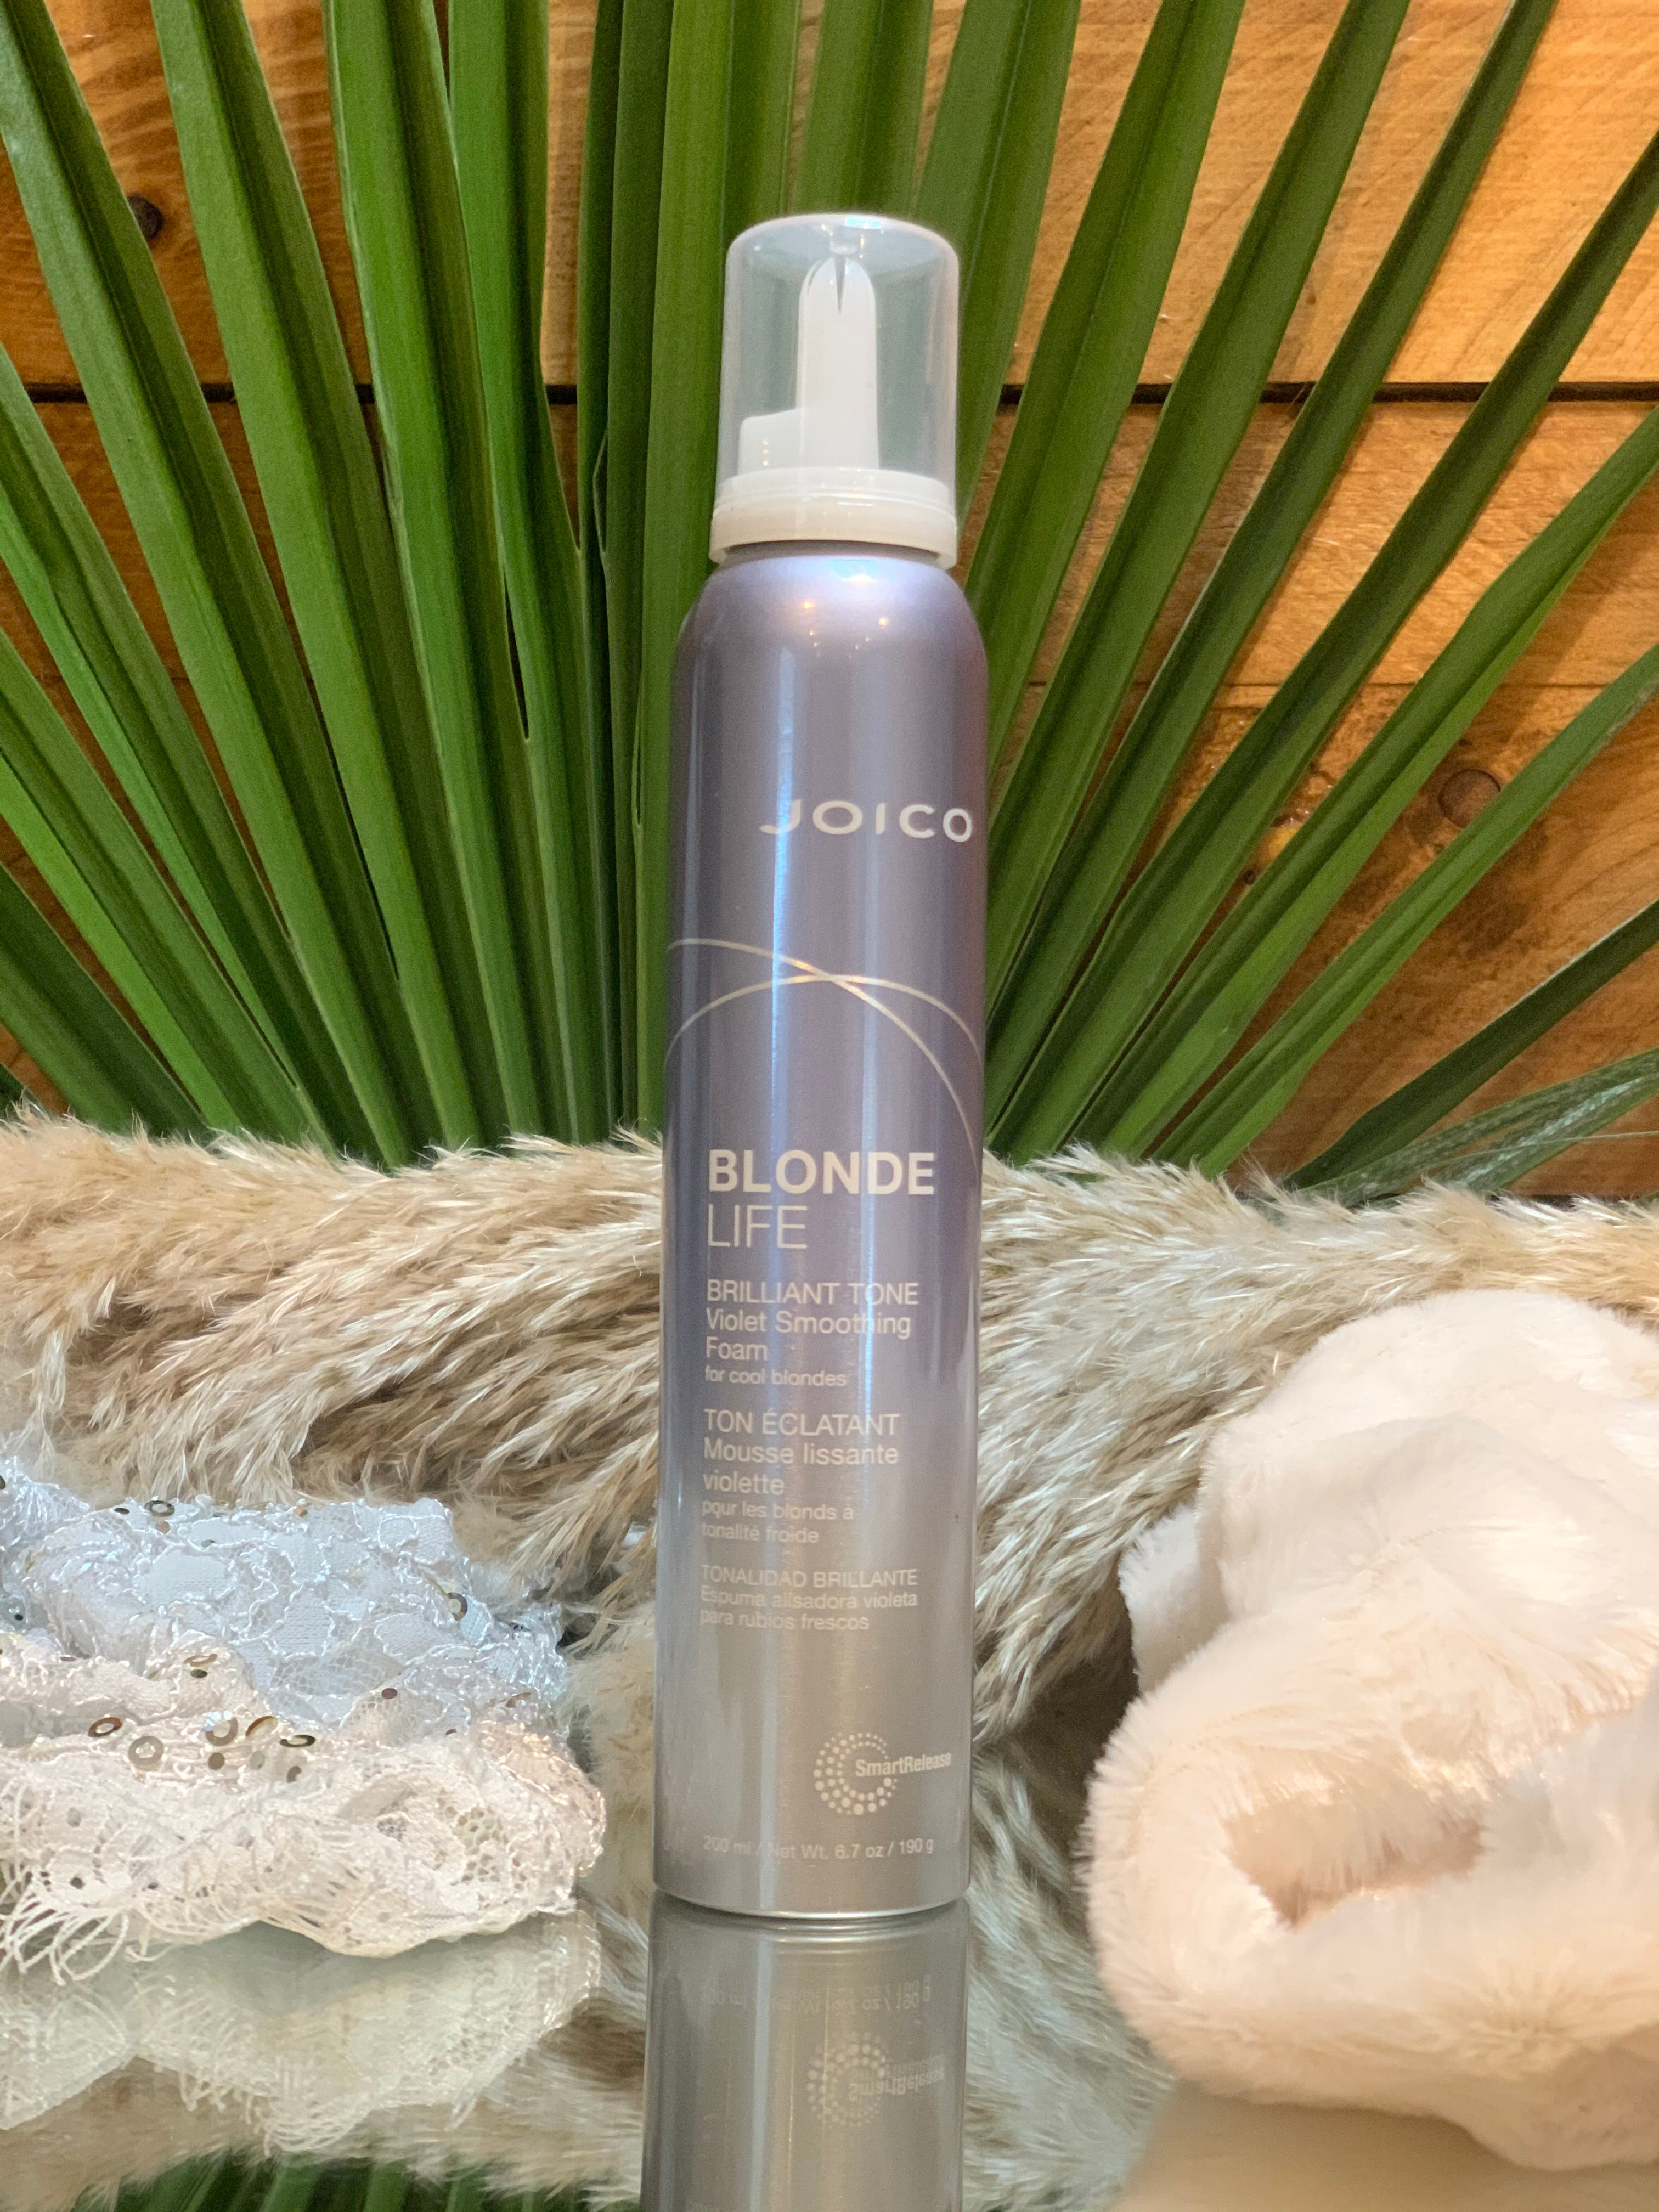 blonde life violet smoothing foam 200ml